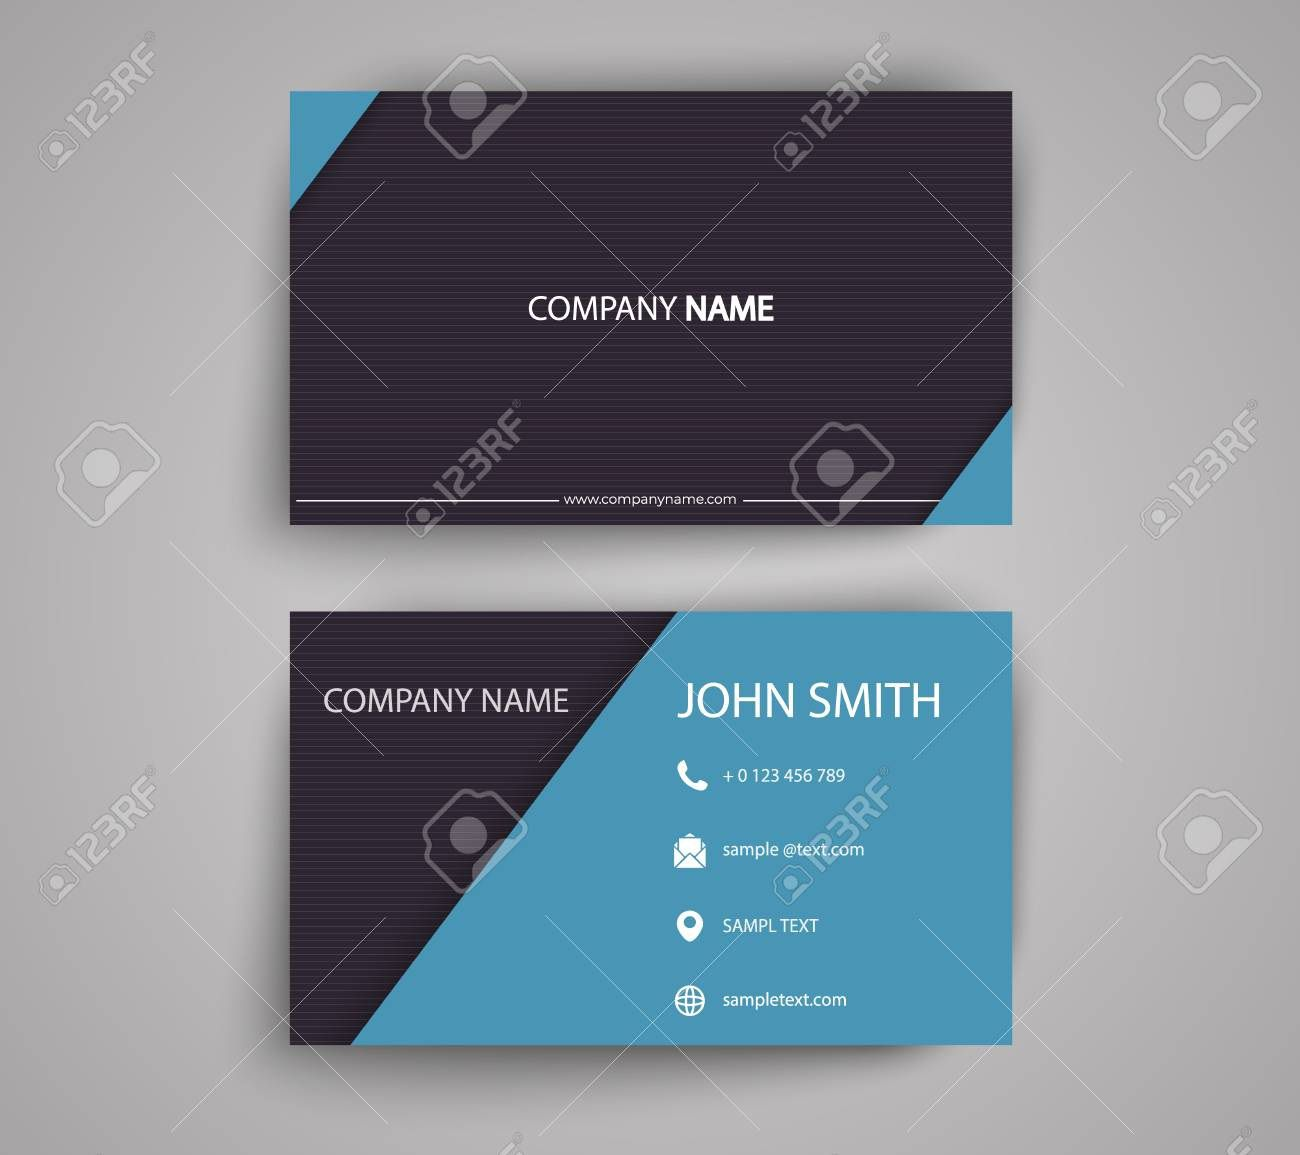 001 Frightening Double Sided Busines Card Template Design  Templates Word Free Two MicrosoftFull